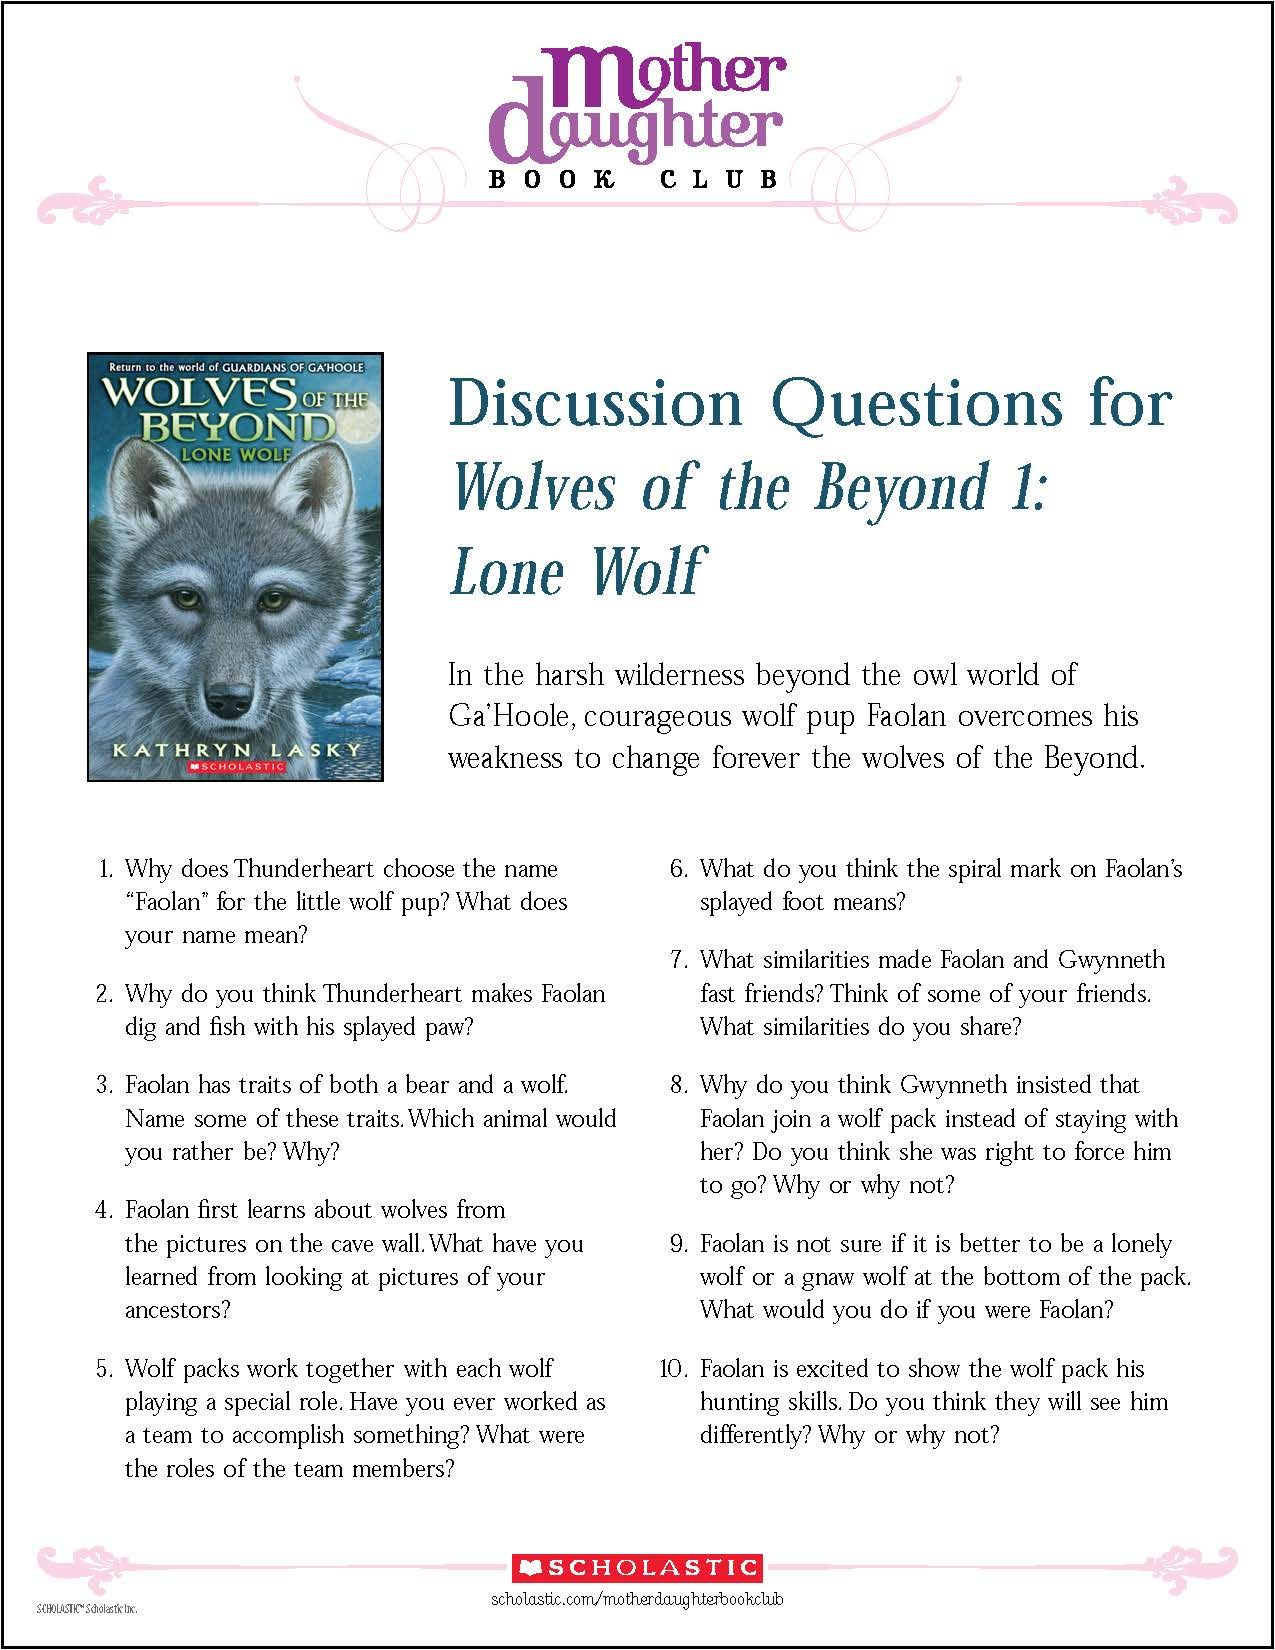 Discussion Questions For Wolves Of The Beyond 1: Lone Wolf By Kathryn Lasky